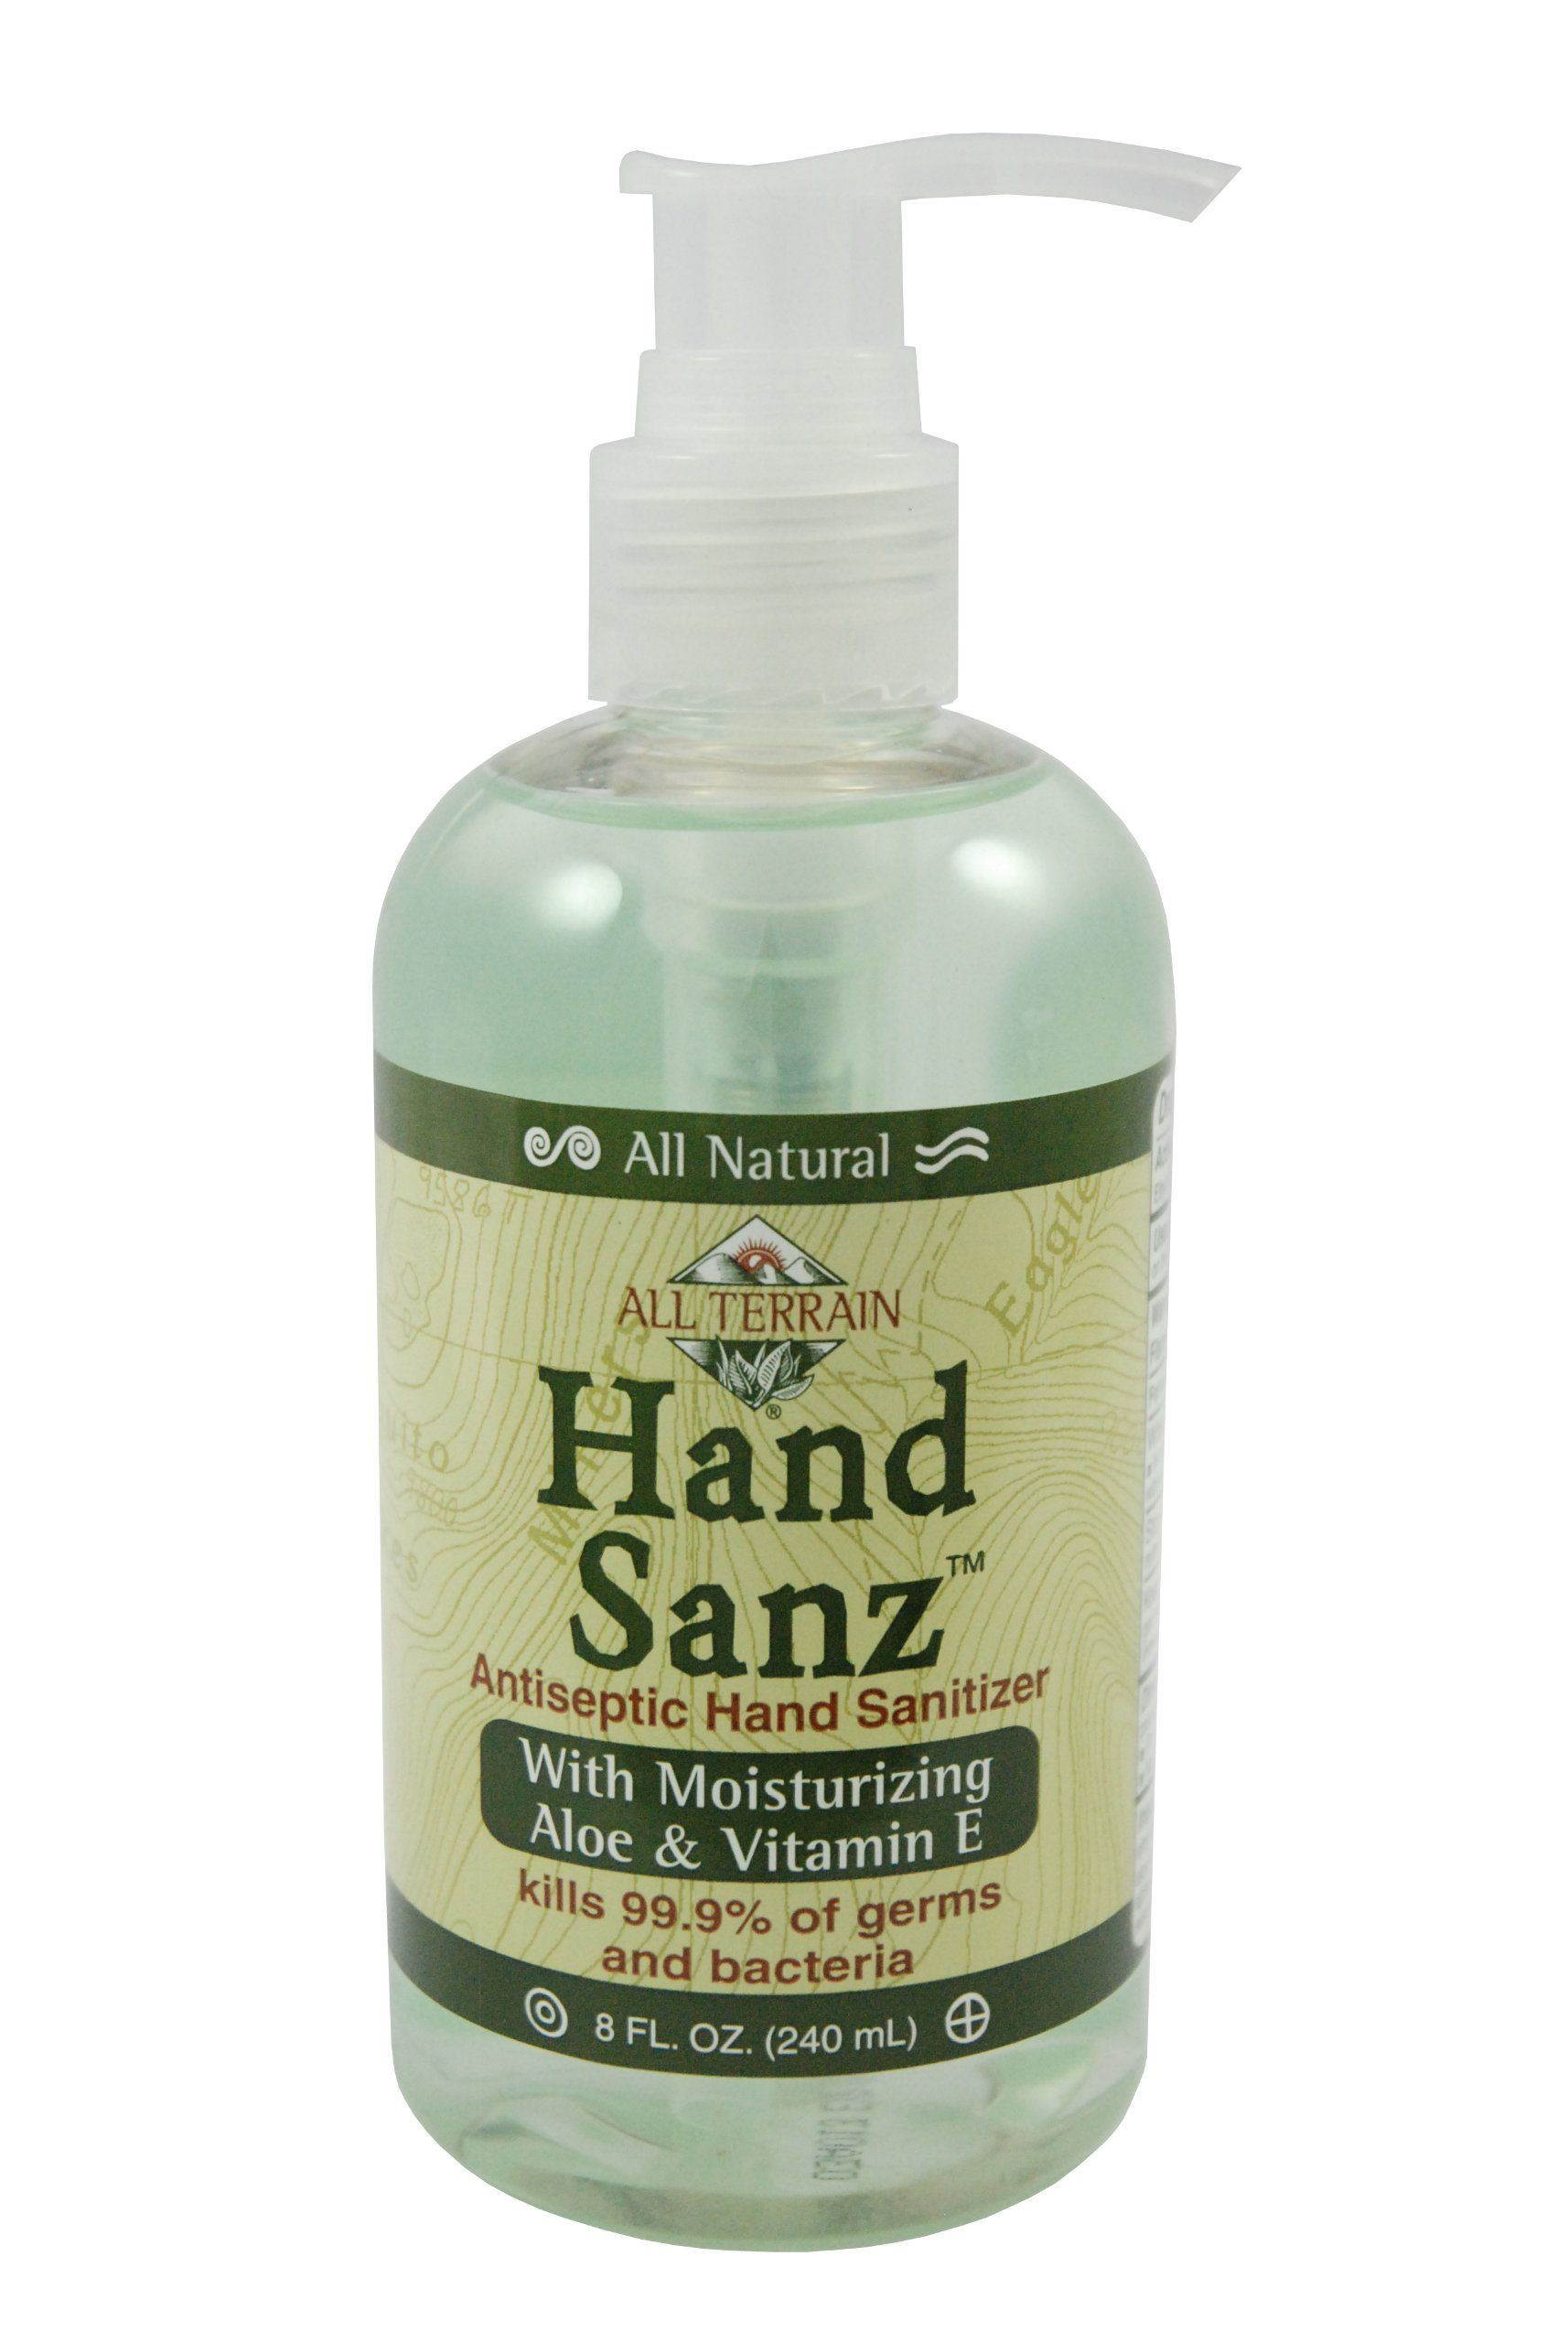 All Terrain Natural Hand Sanitizer Gel With Aloe And Vitamin E 2